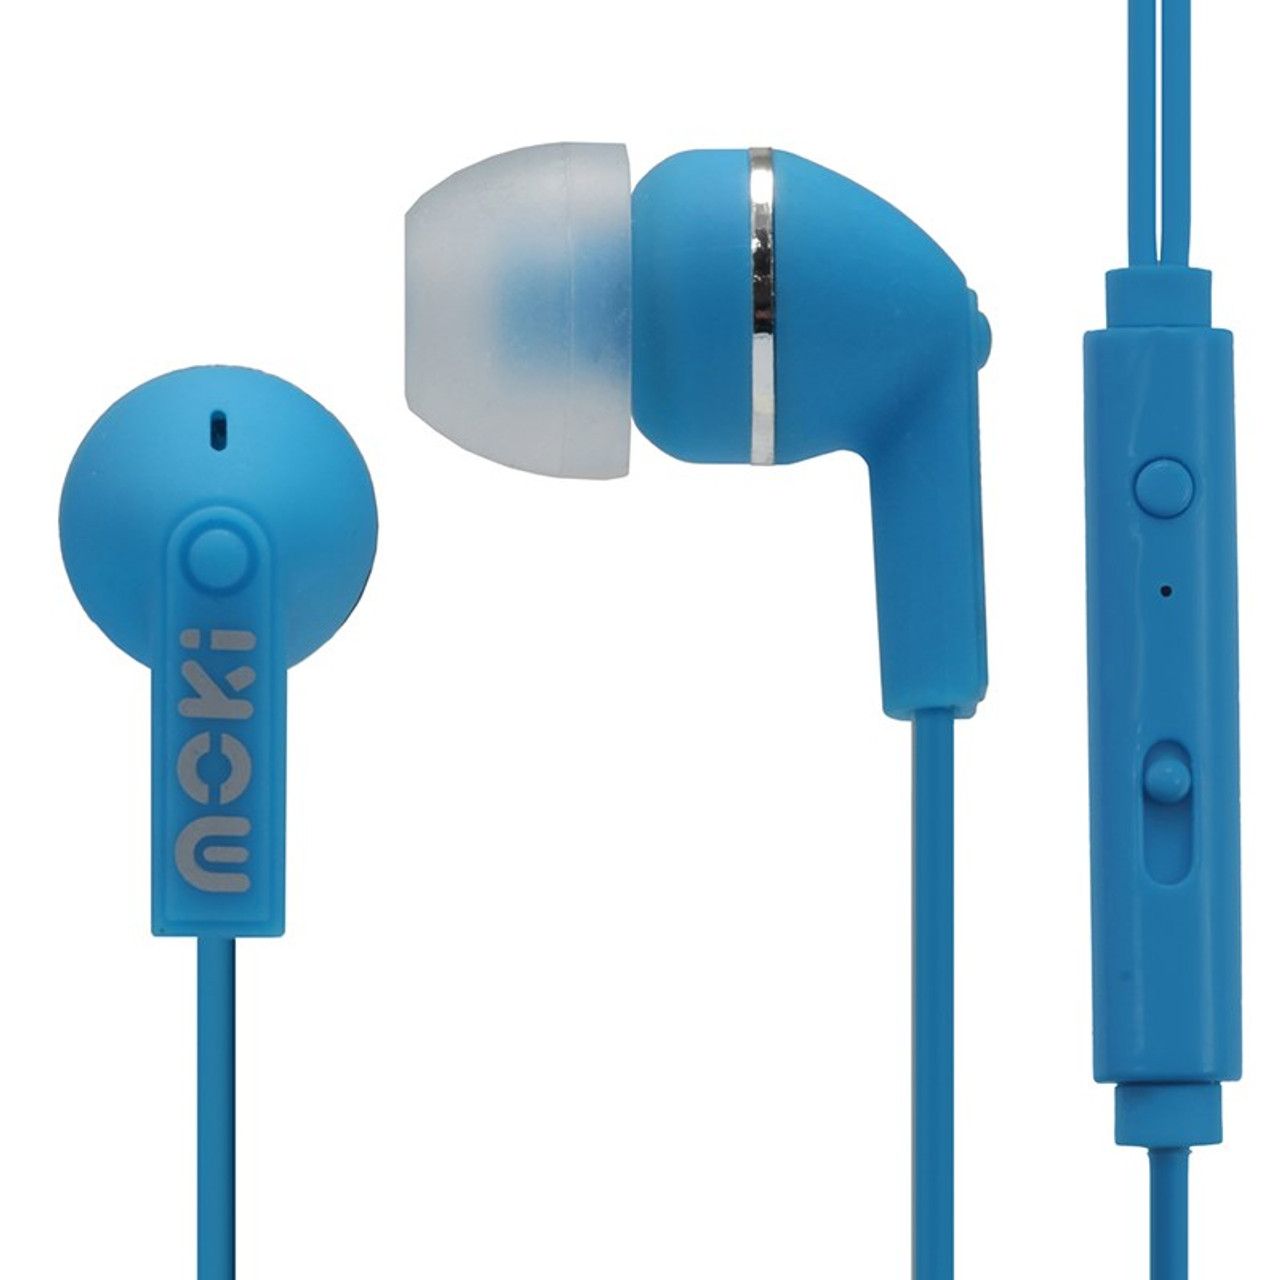 Image for Moki Noise Isolation Earbuds with In-Line Mic/Control - Blue CX Computer Superstore